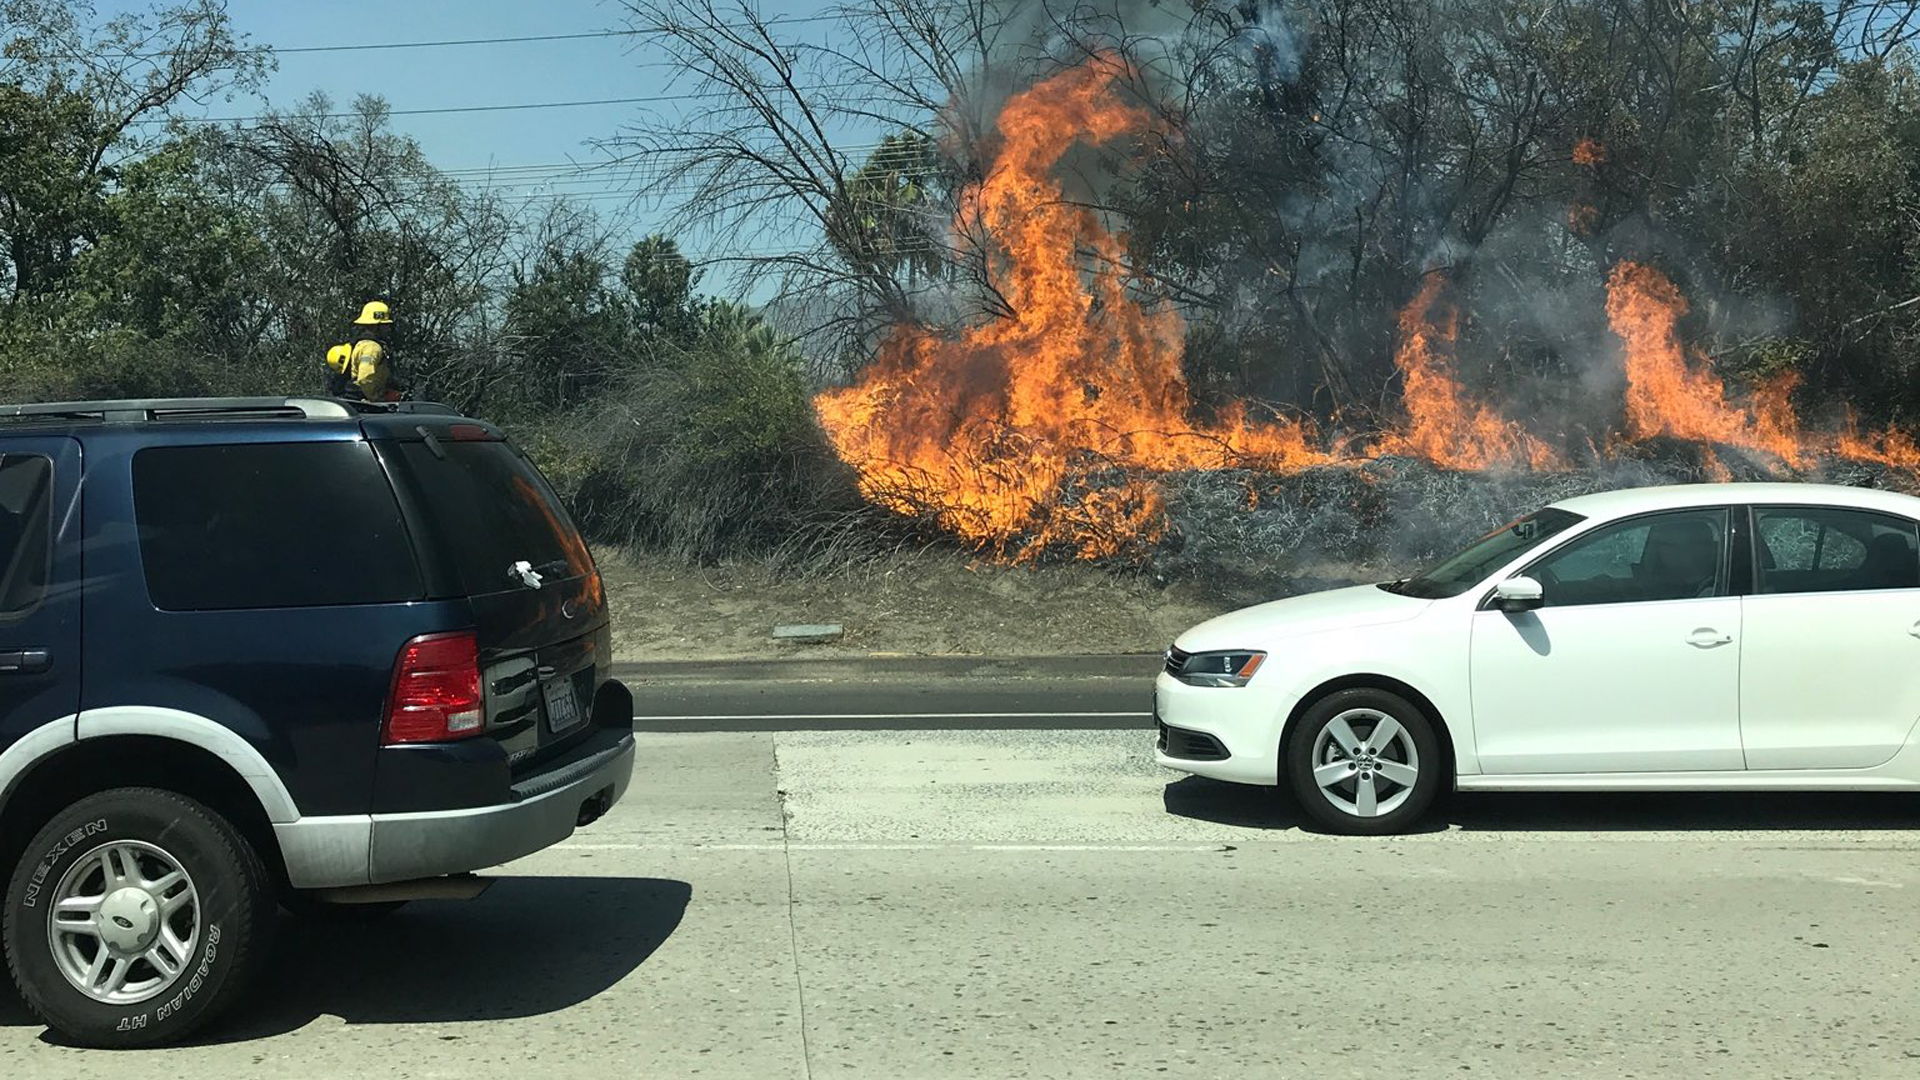 A brush fire burns along the 118 Freeway near the 5 in Mission Hills on Sept. 8, 2019. (Credit: Twitter.com/1standOmega)